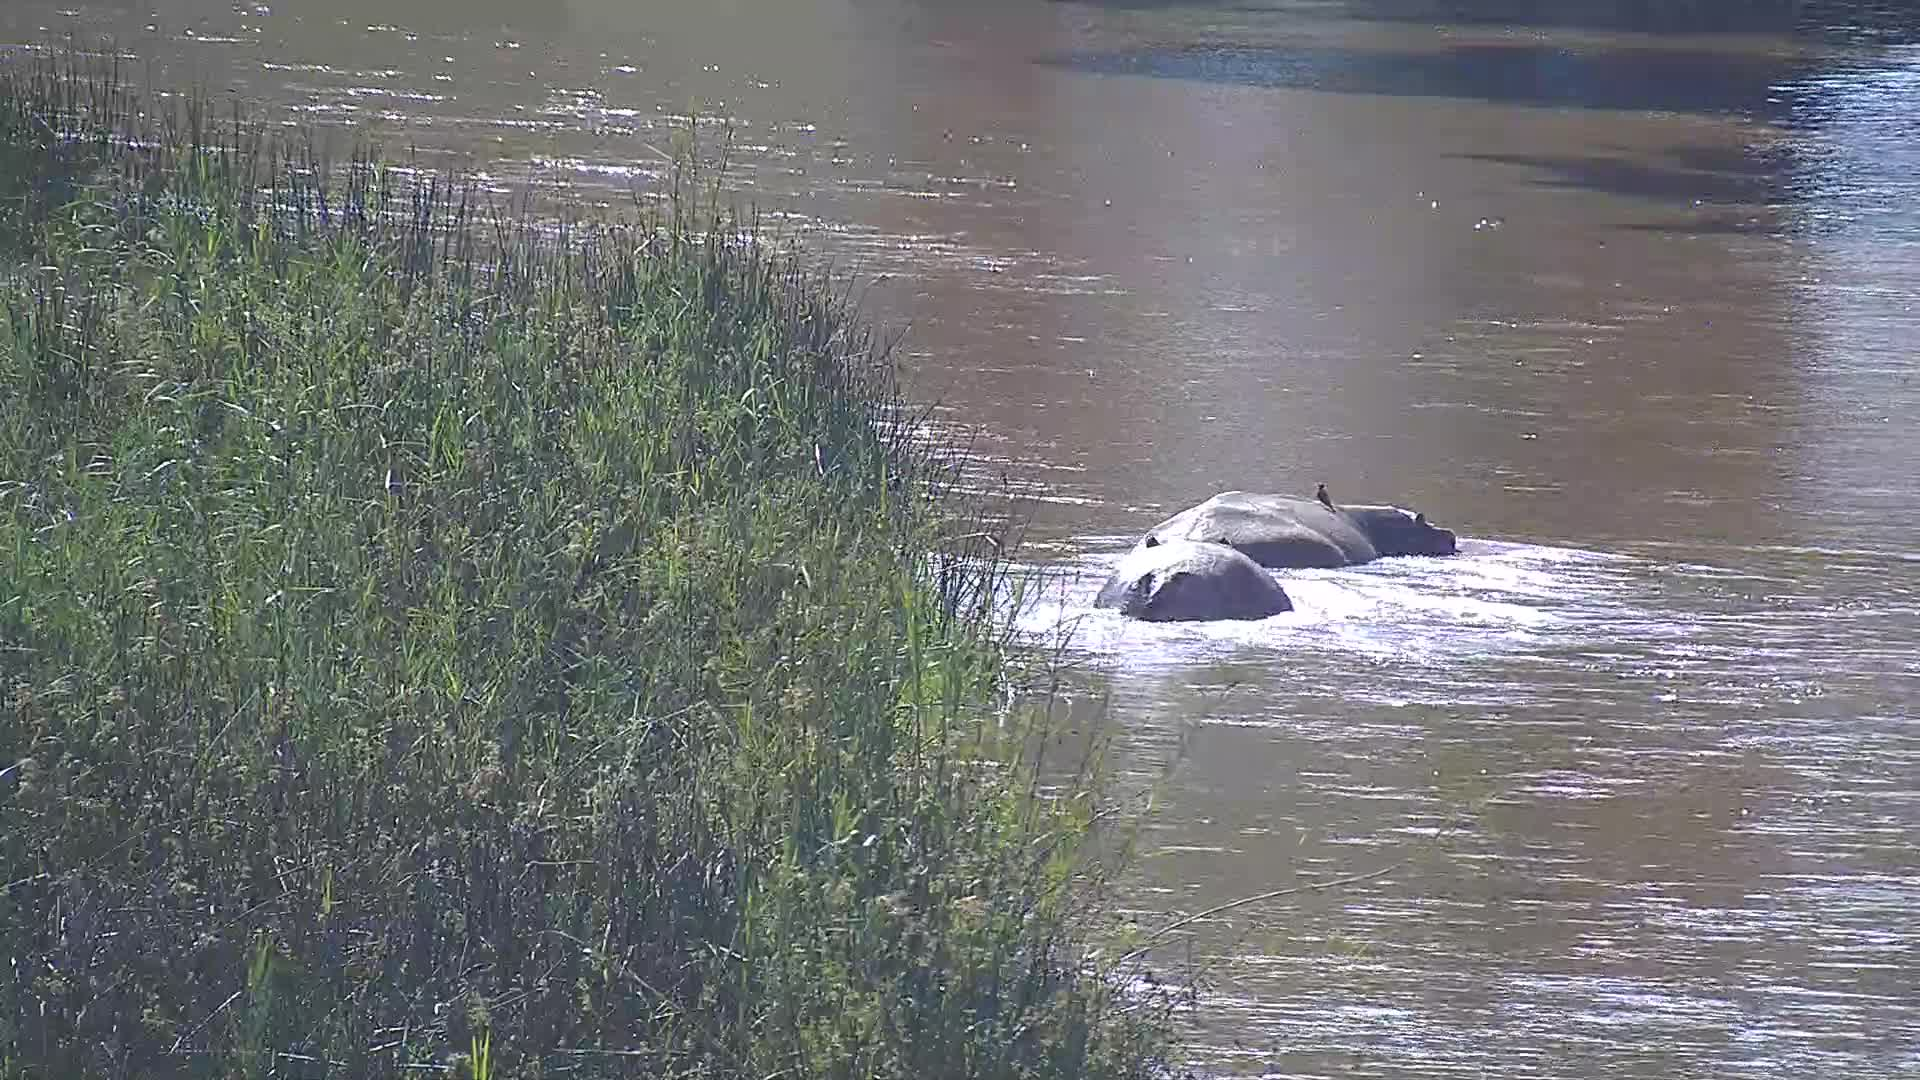 VIDEO: Hippos in river with calf.